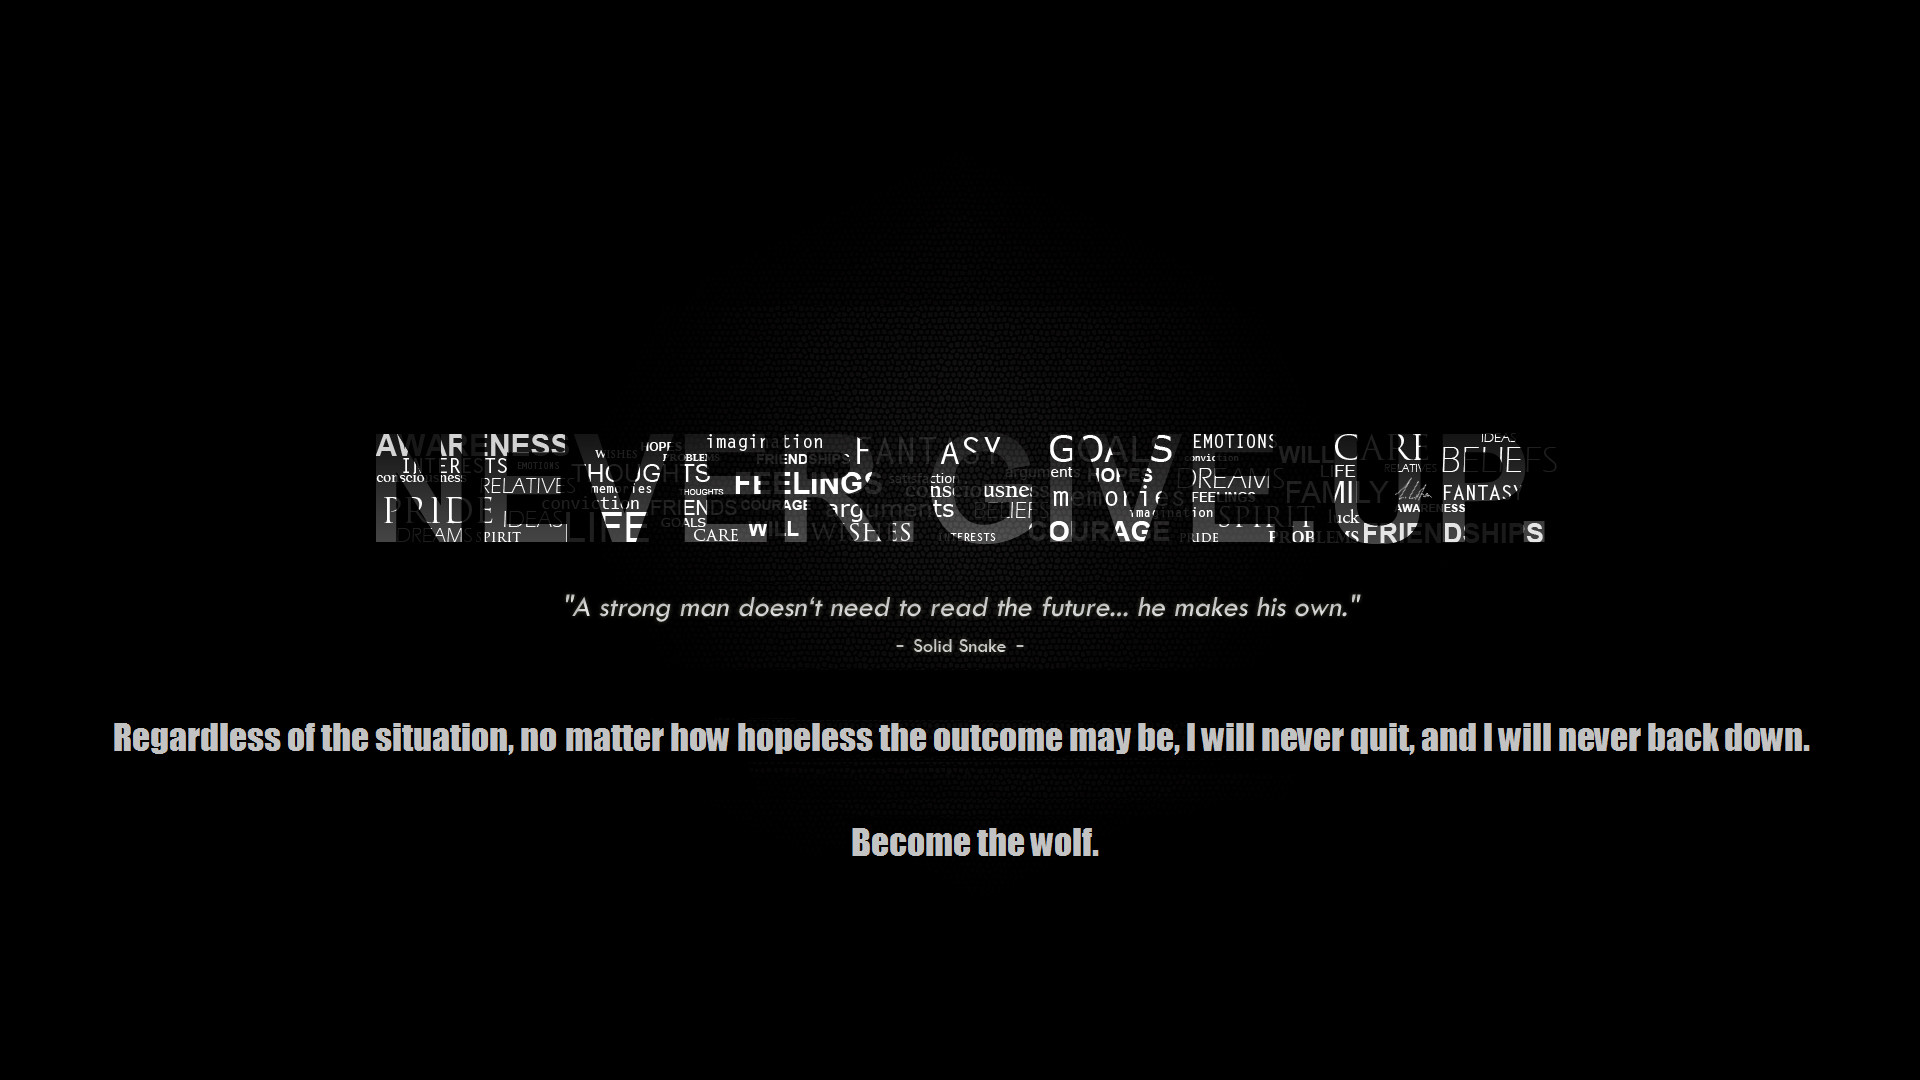 1920x1080 Nike-Black-Quote-Image